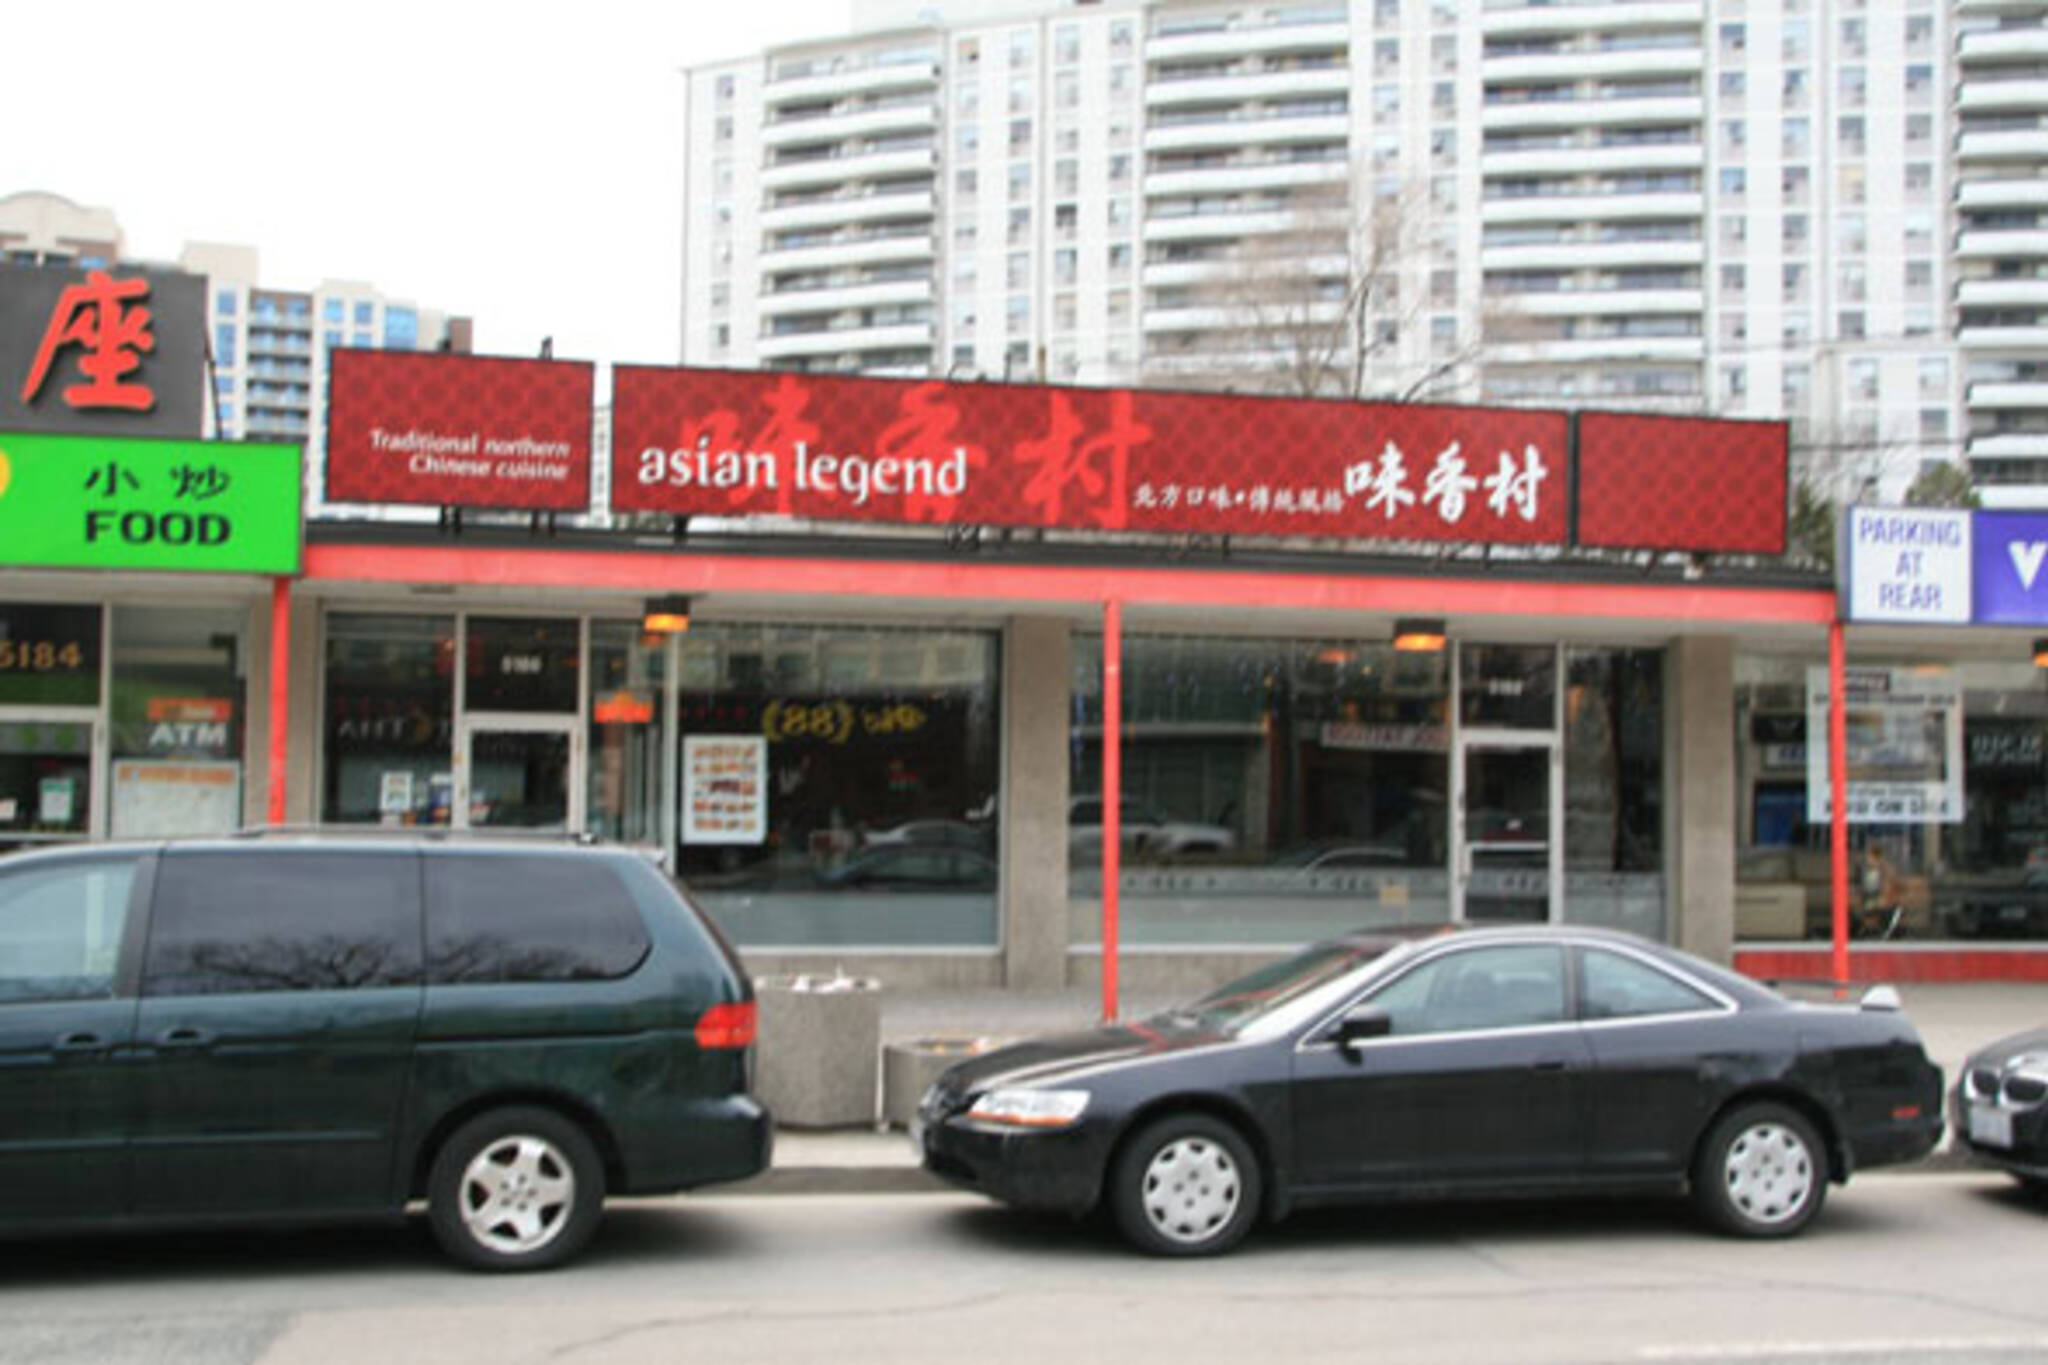 Chinese Restaurant On Yonge And Sheppard